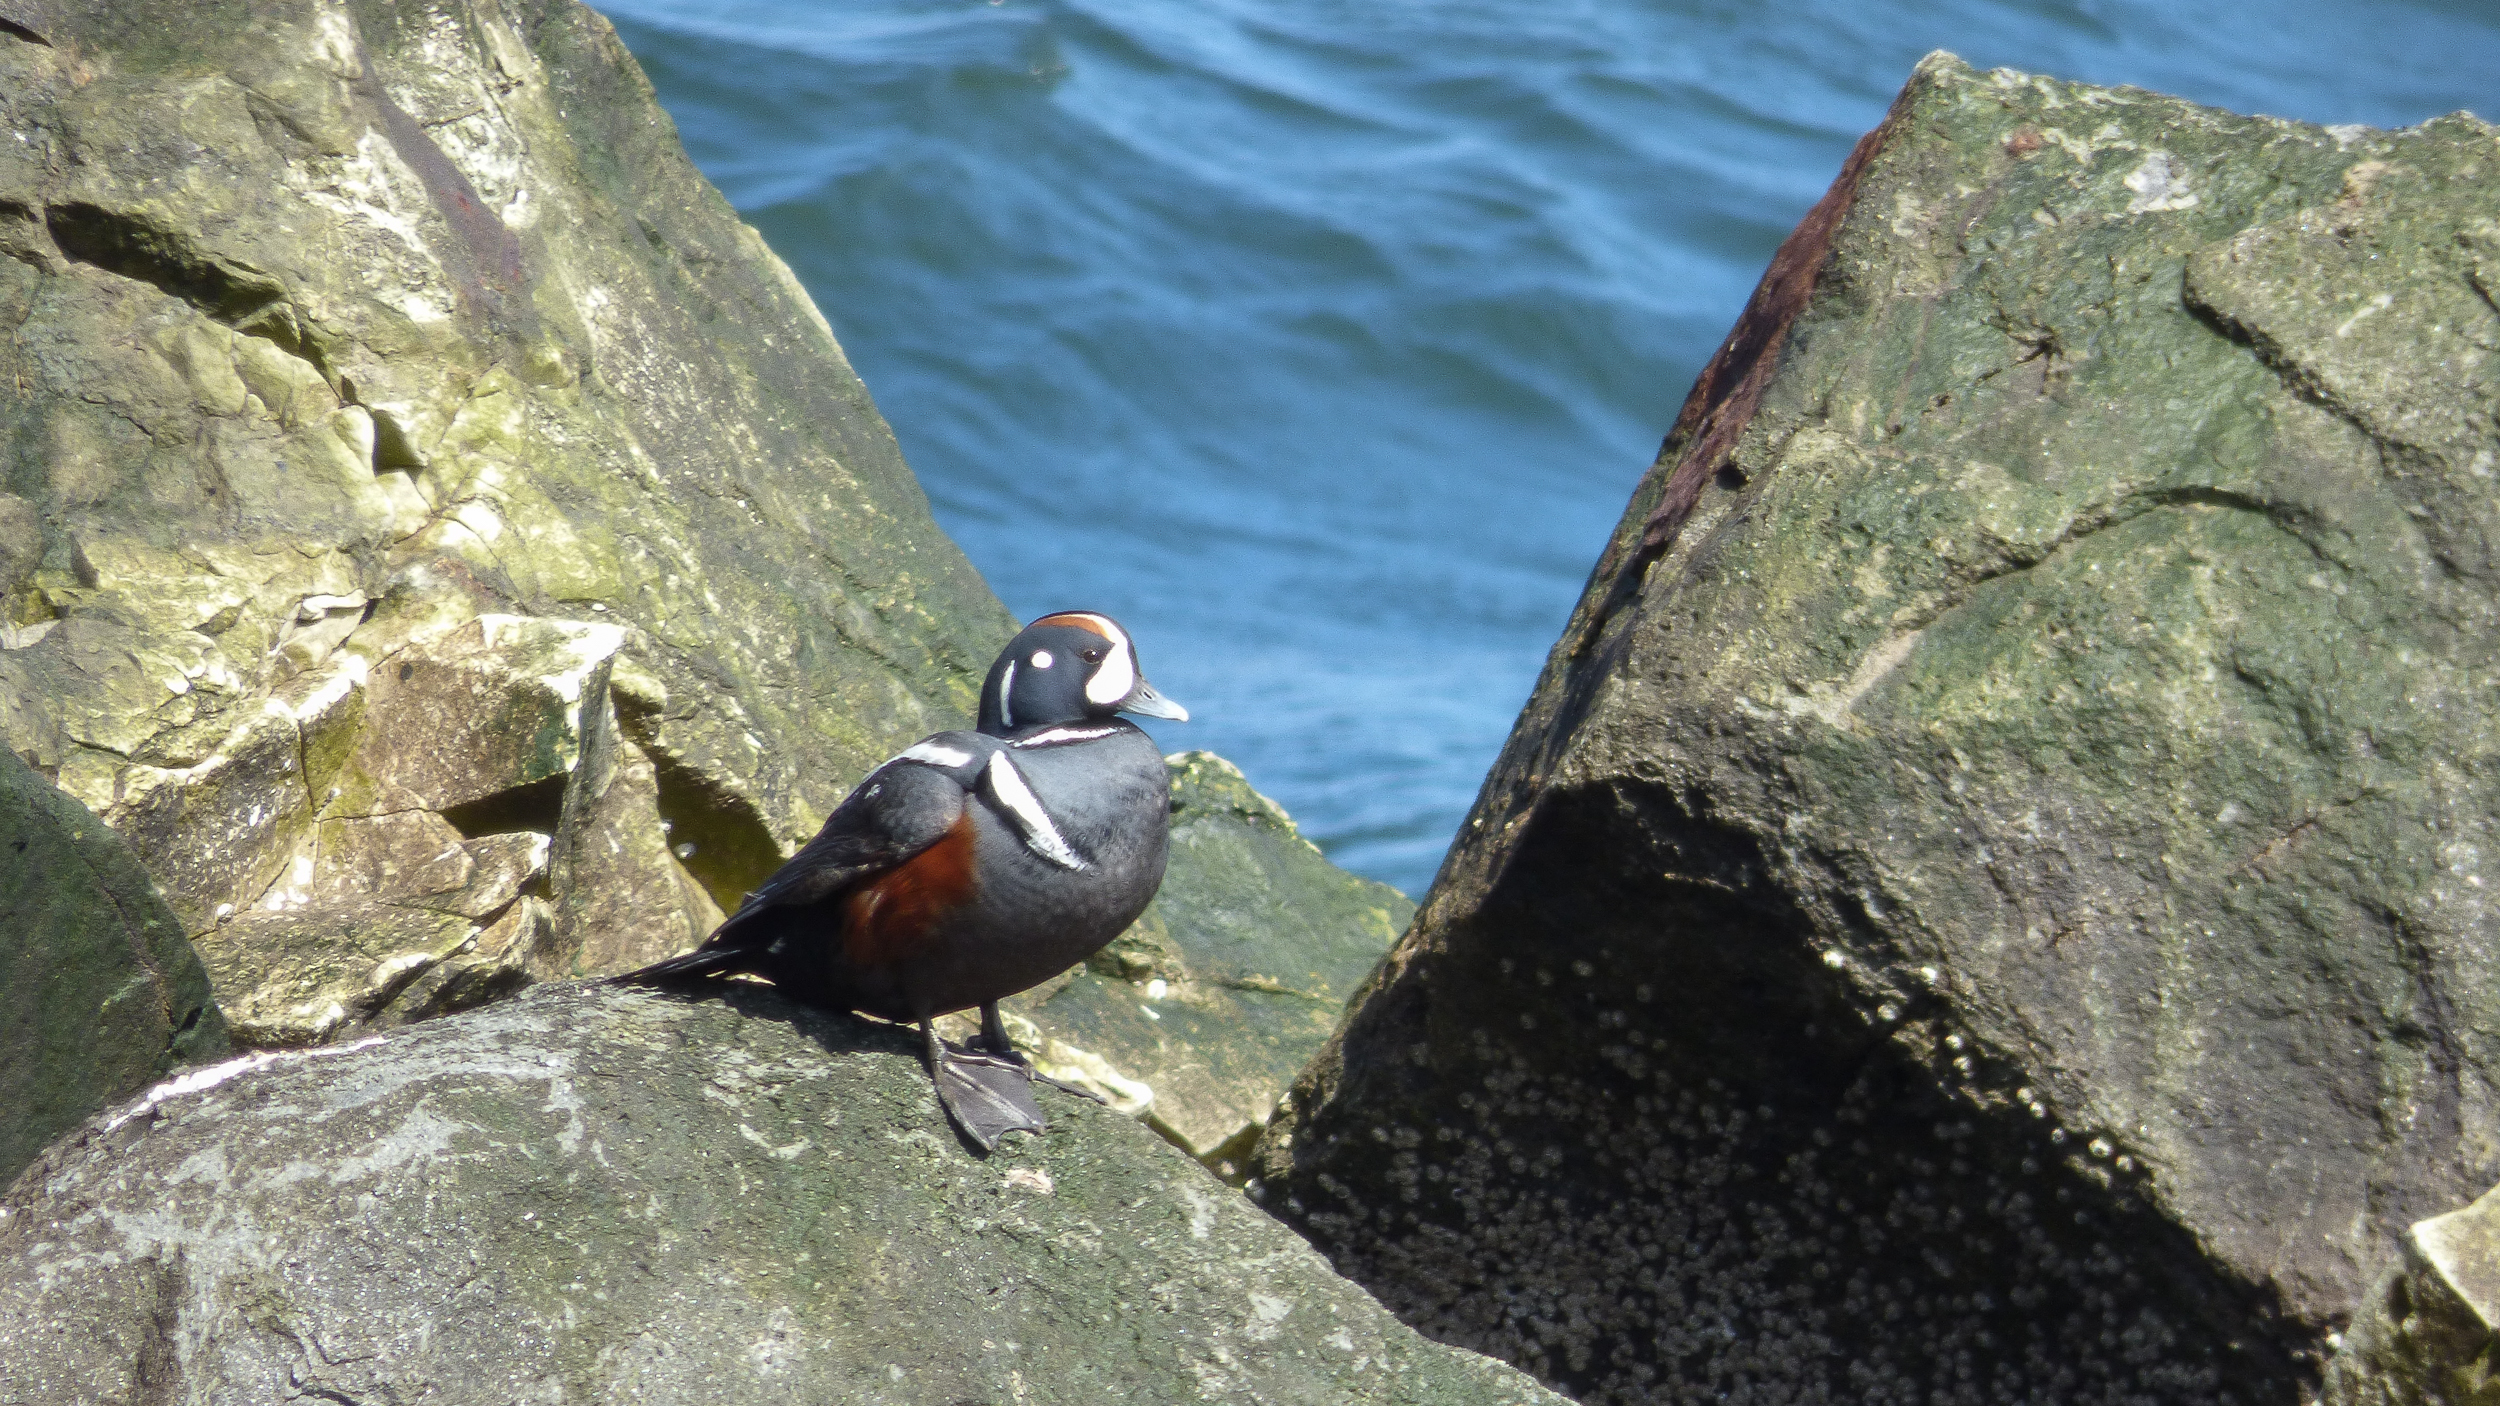 Harlequin duck in Gaspésie, Canada. Photo by Thibaut Rivière.